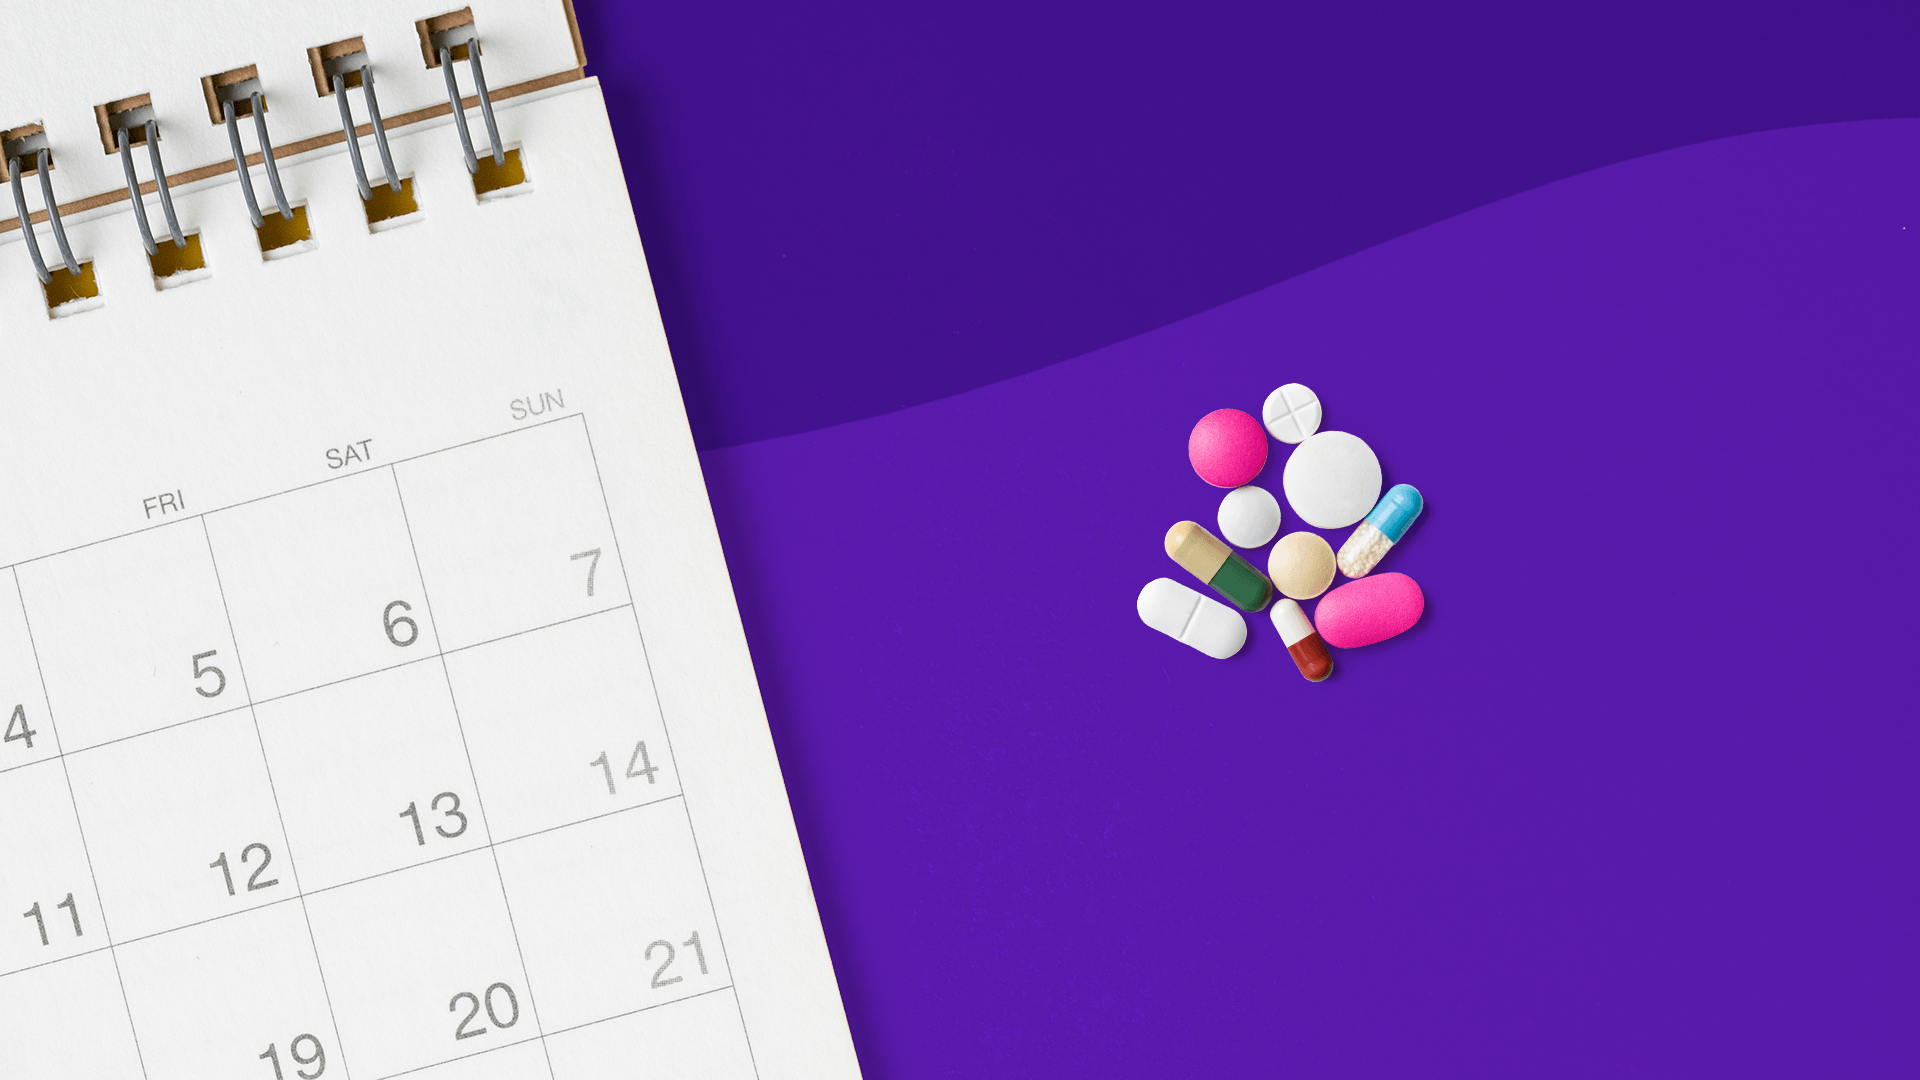 See the most prescribed drugs in 2019